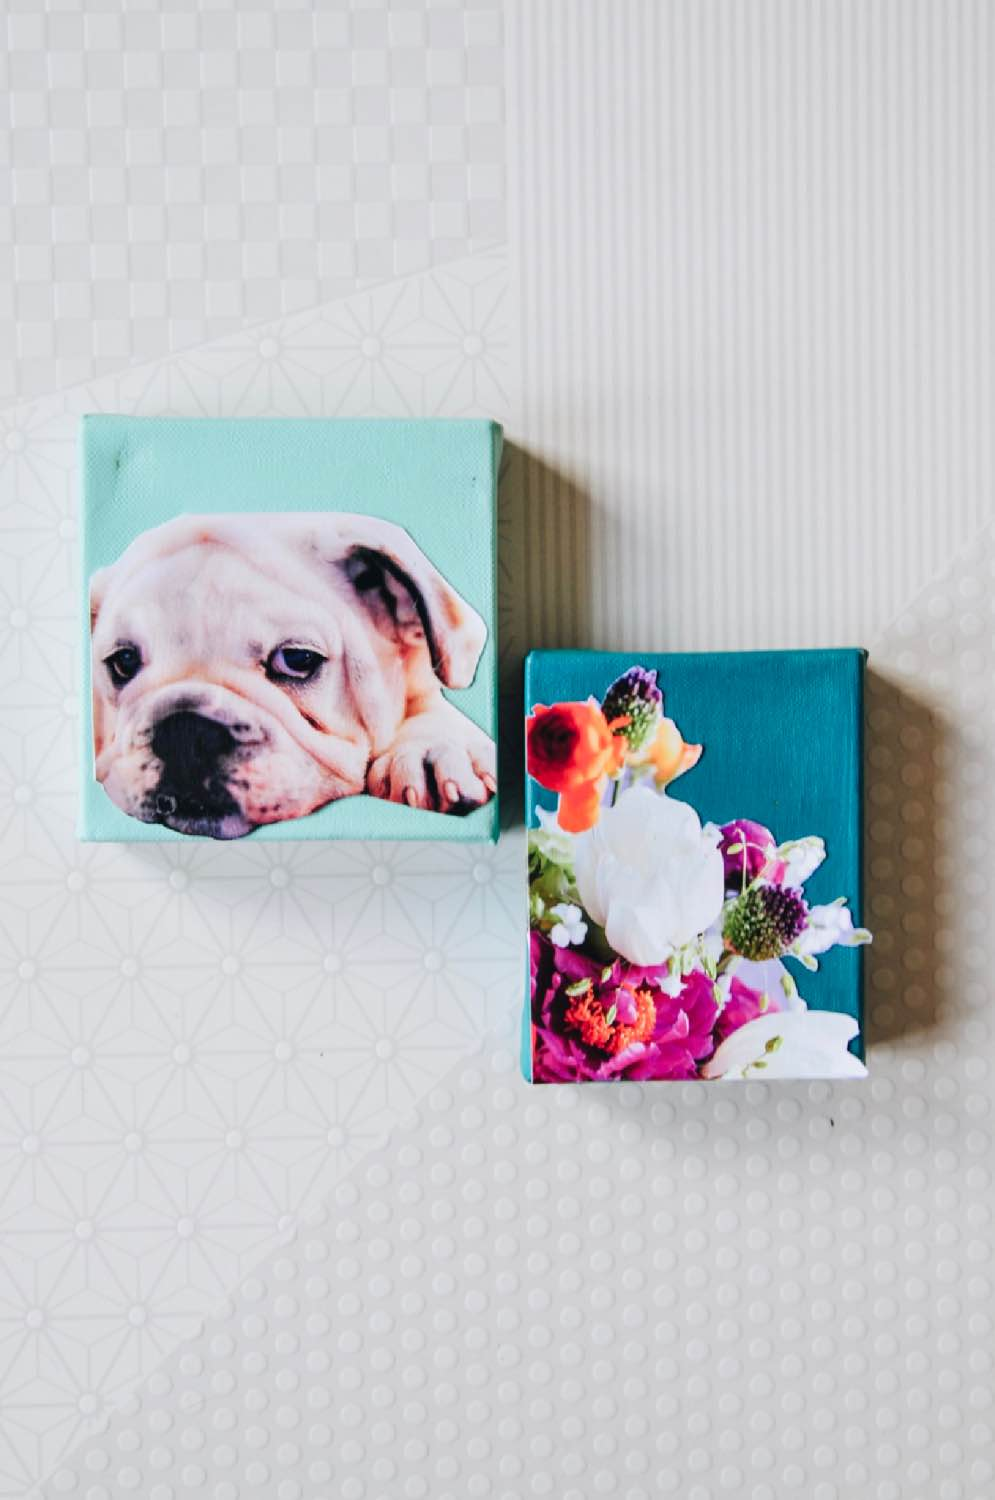 how to make nursery art collage with puppies and flowers